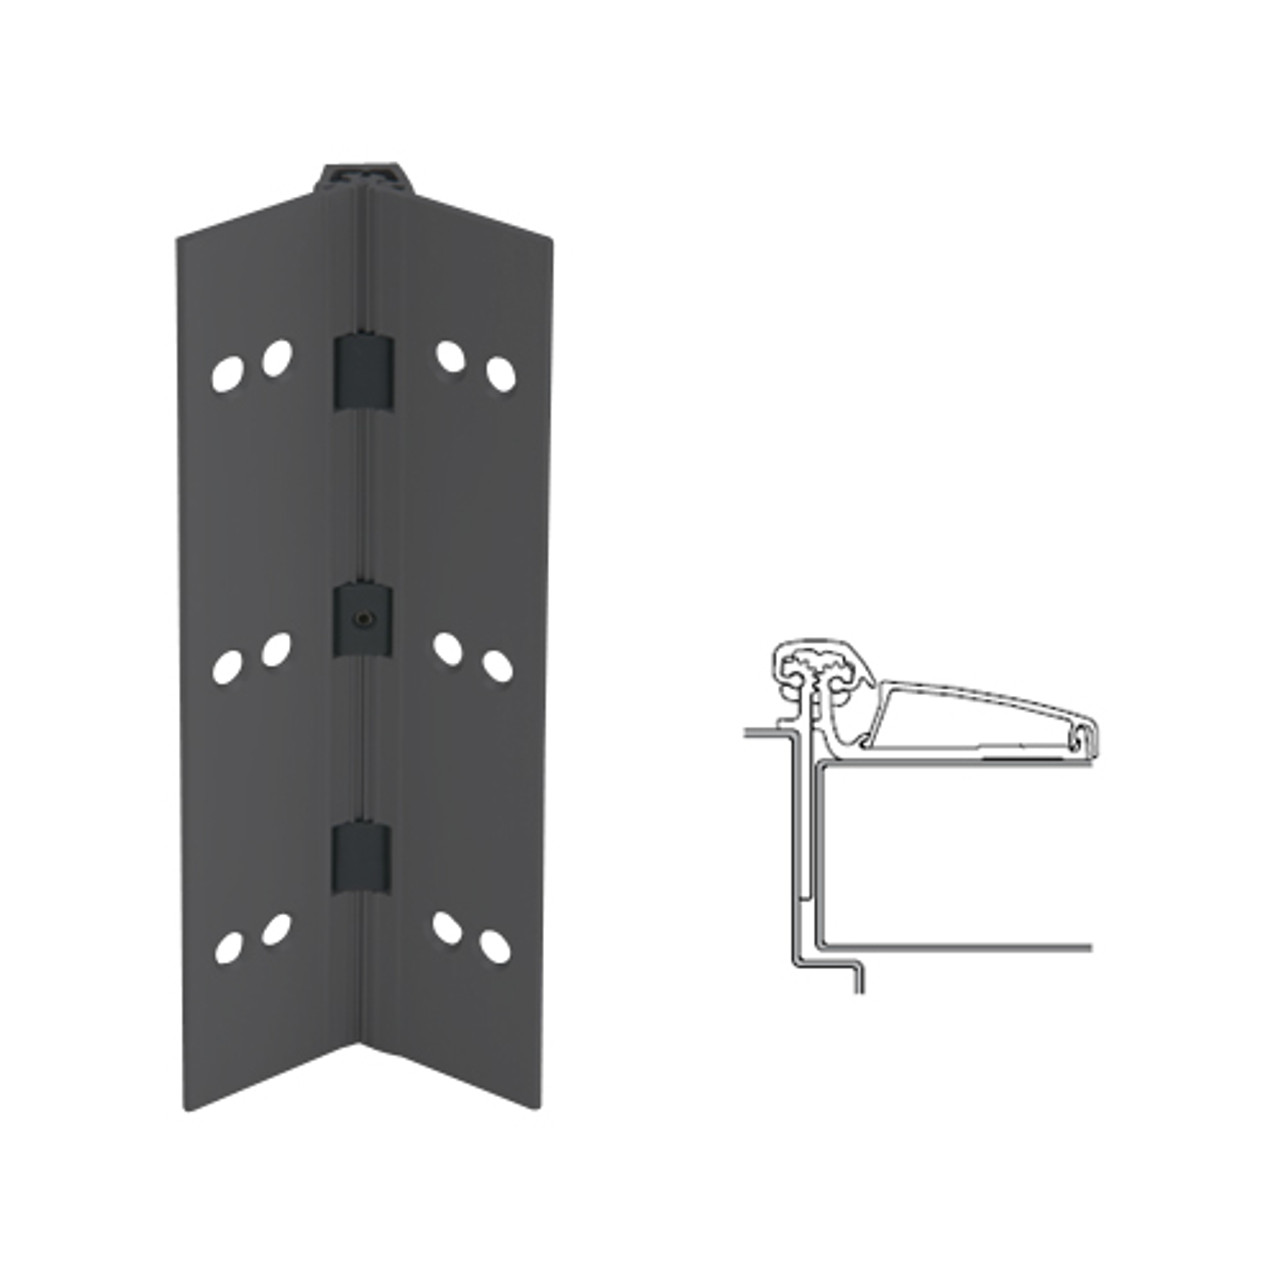 045XY-315AN-85-SECHM IVES Adjustable Half Surface Continuous Geared Hinges with Security Screws - Hex Pin Drive in Anodized Black